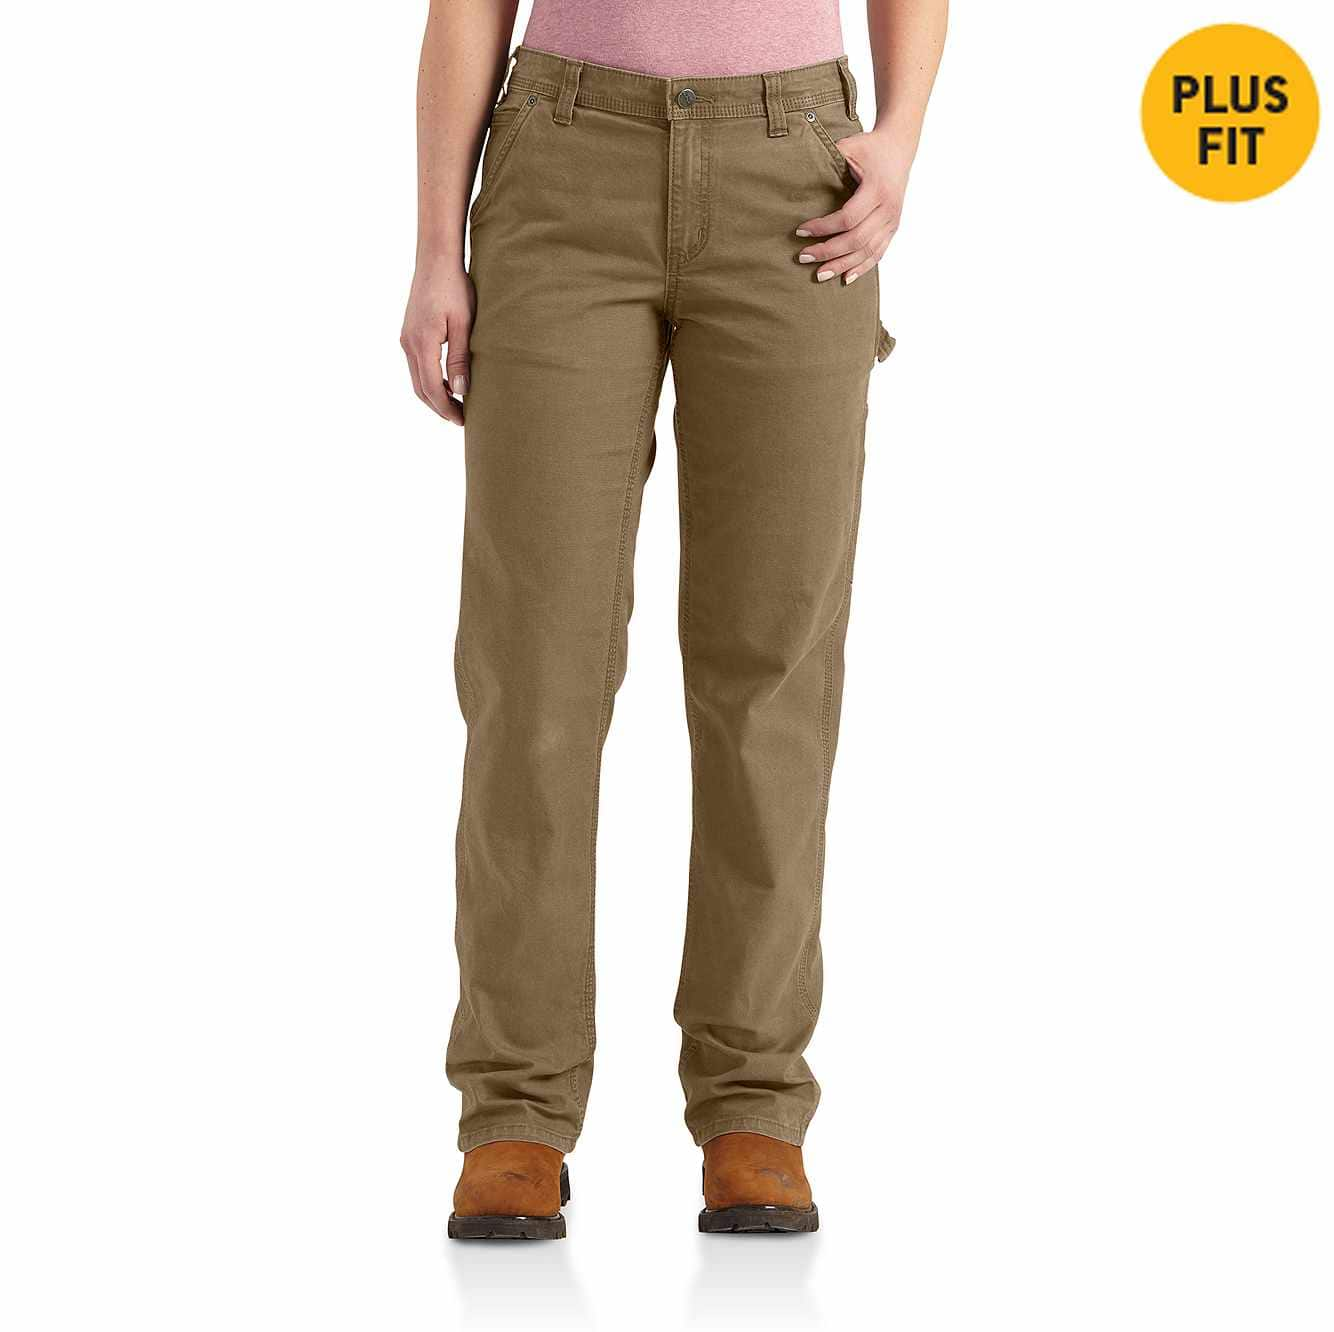 Picture of Original Fit Crawford Pant in Yukon